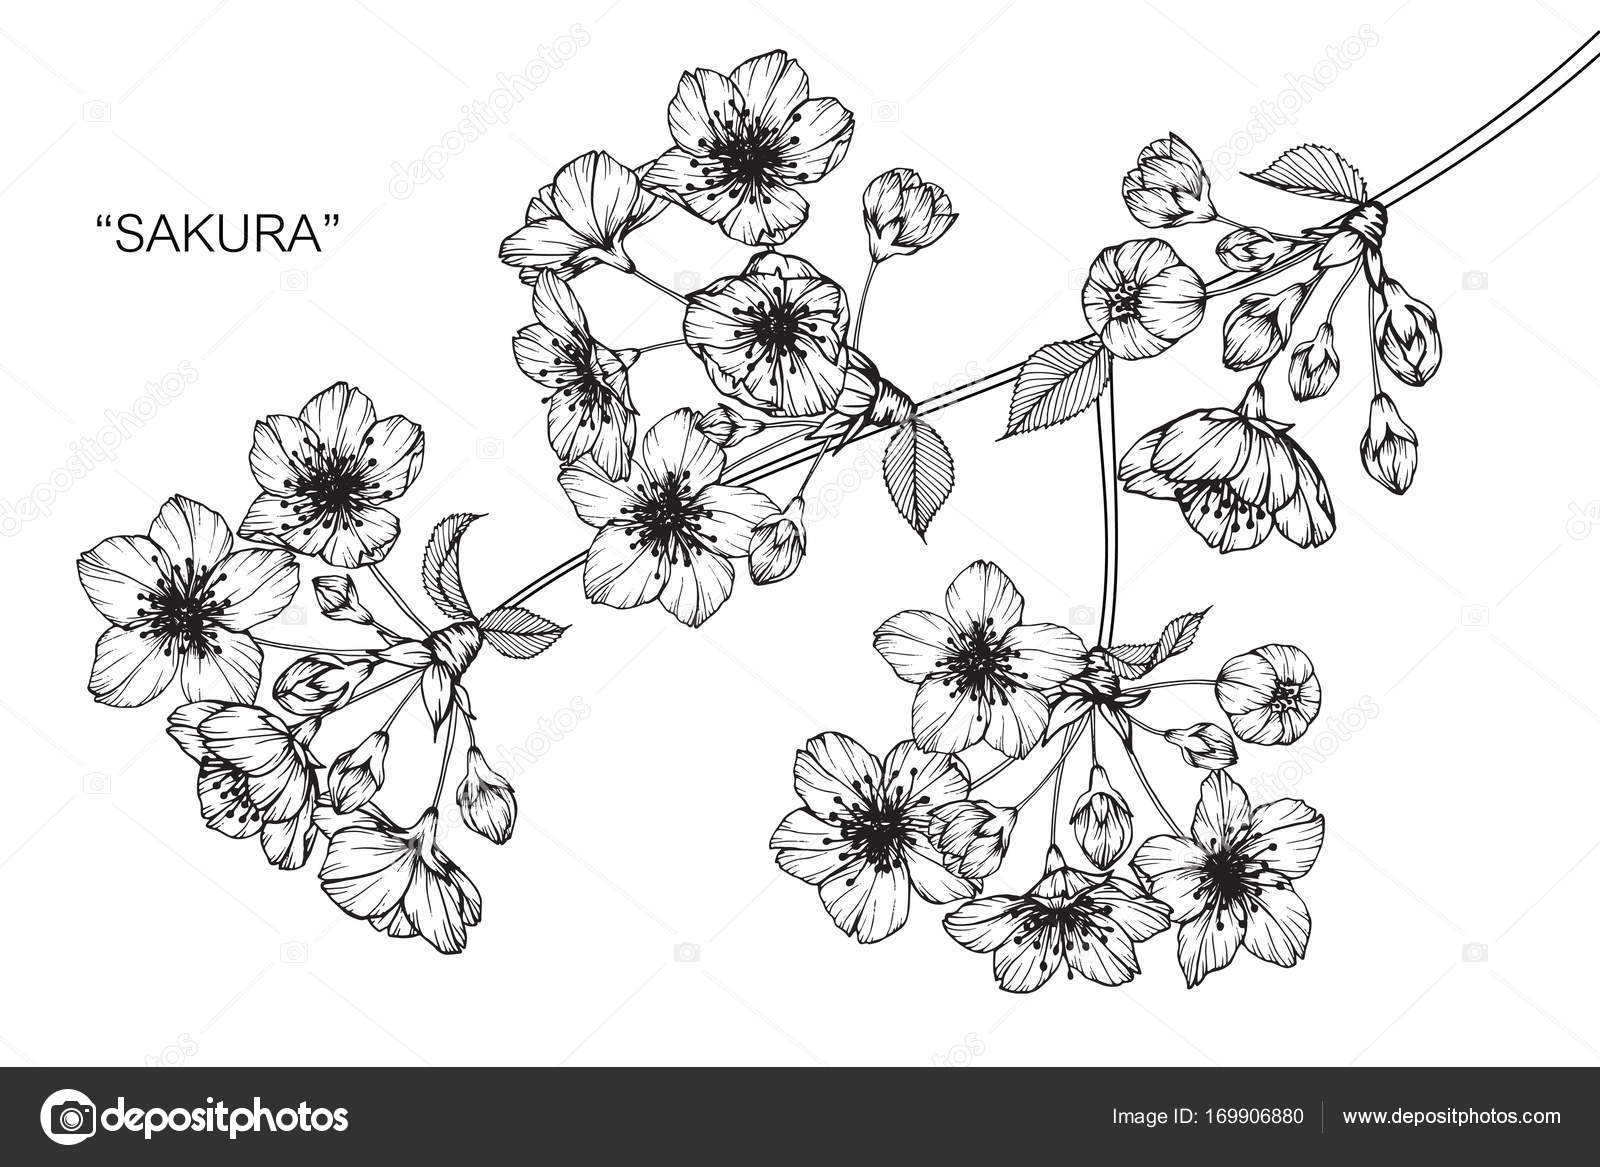 Blossom Flower Line Drawing : Cherry blossom flower line drawing flowers ideas